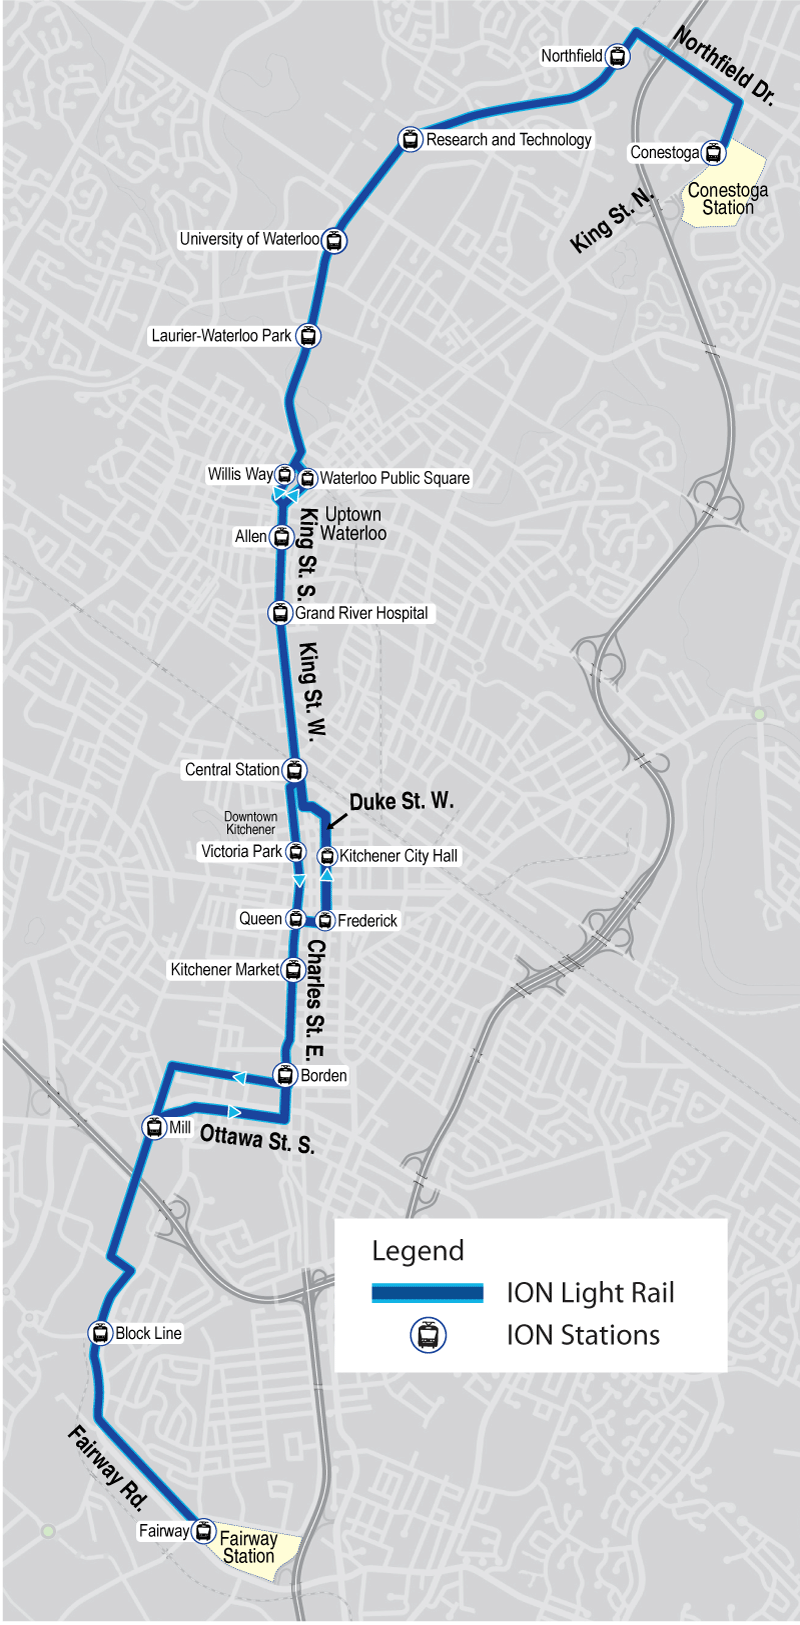 Map of ION light rail